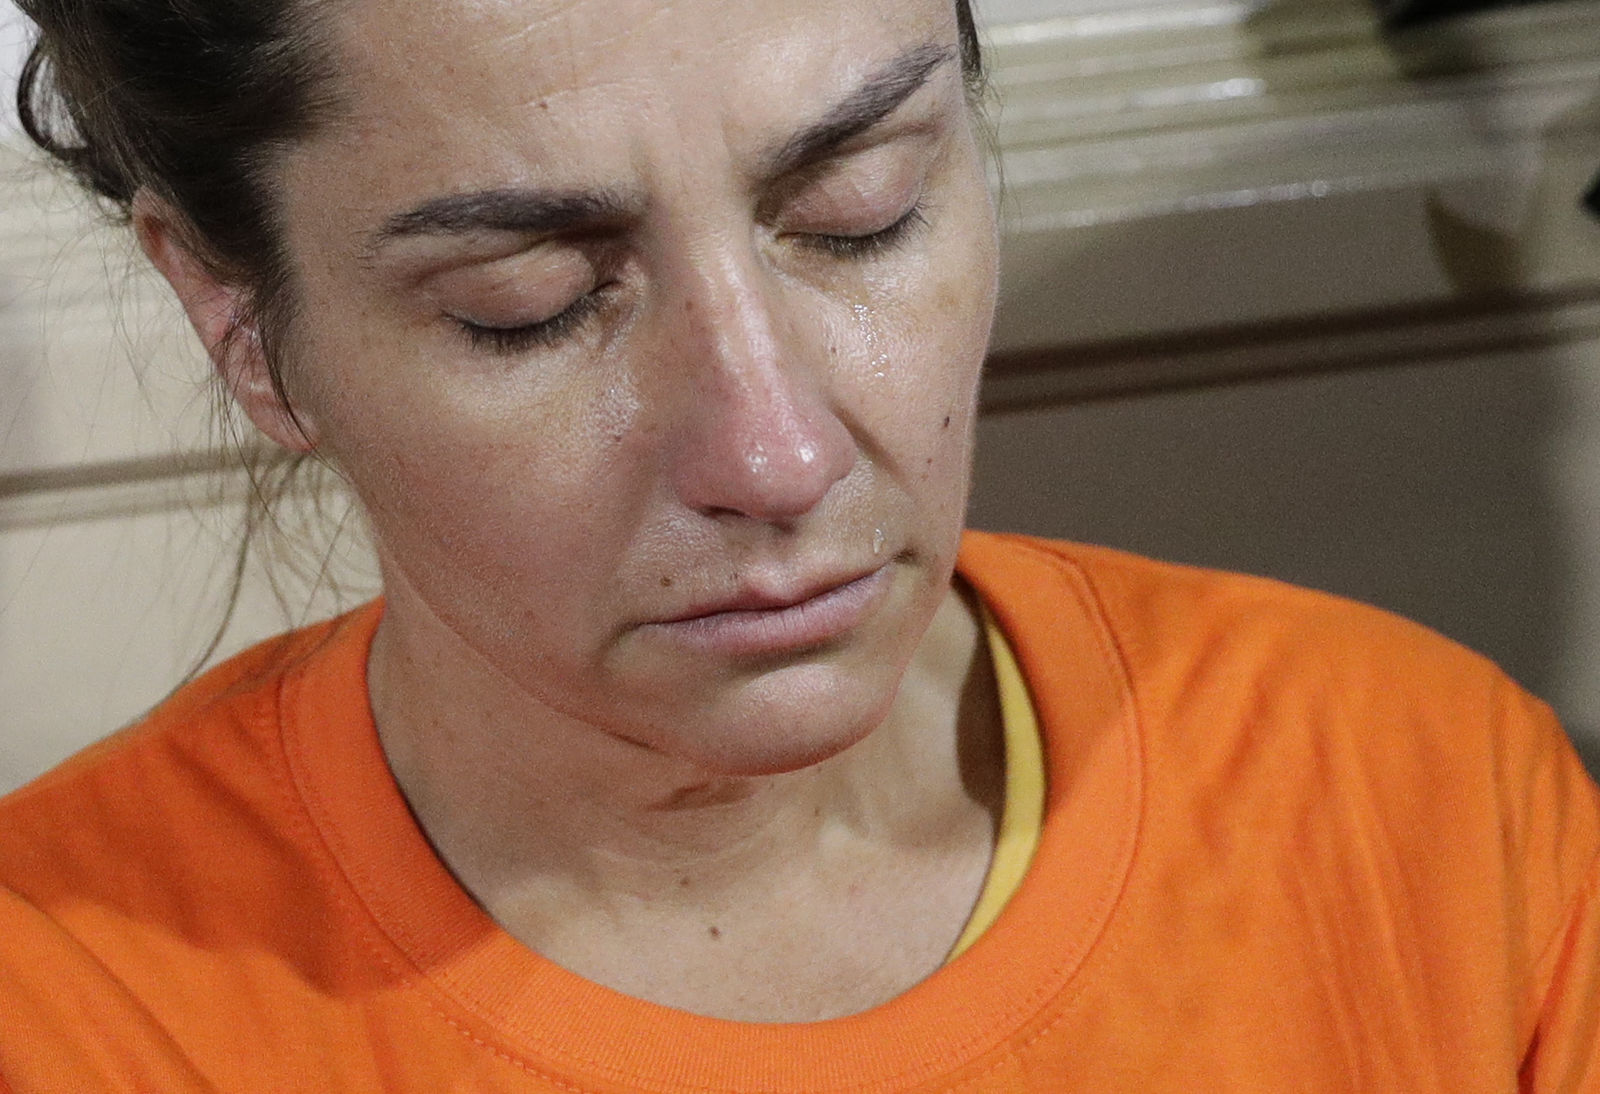 A tear rolls on the cheek of American national Jennifer Erin Talbot from Ohio before the start of a press conference by the National Bureau of Investigation (NBI) in Manila, Philippines, Thursday, Sept. 5, 2019. . (AP Photo/Aaron Favila)